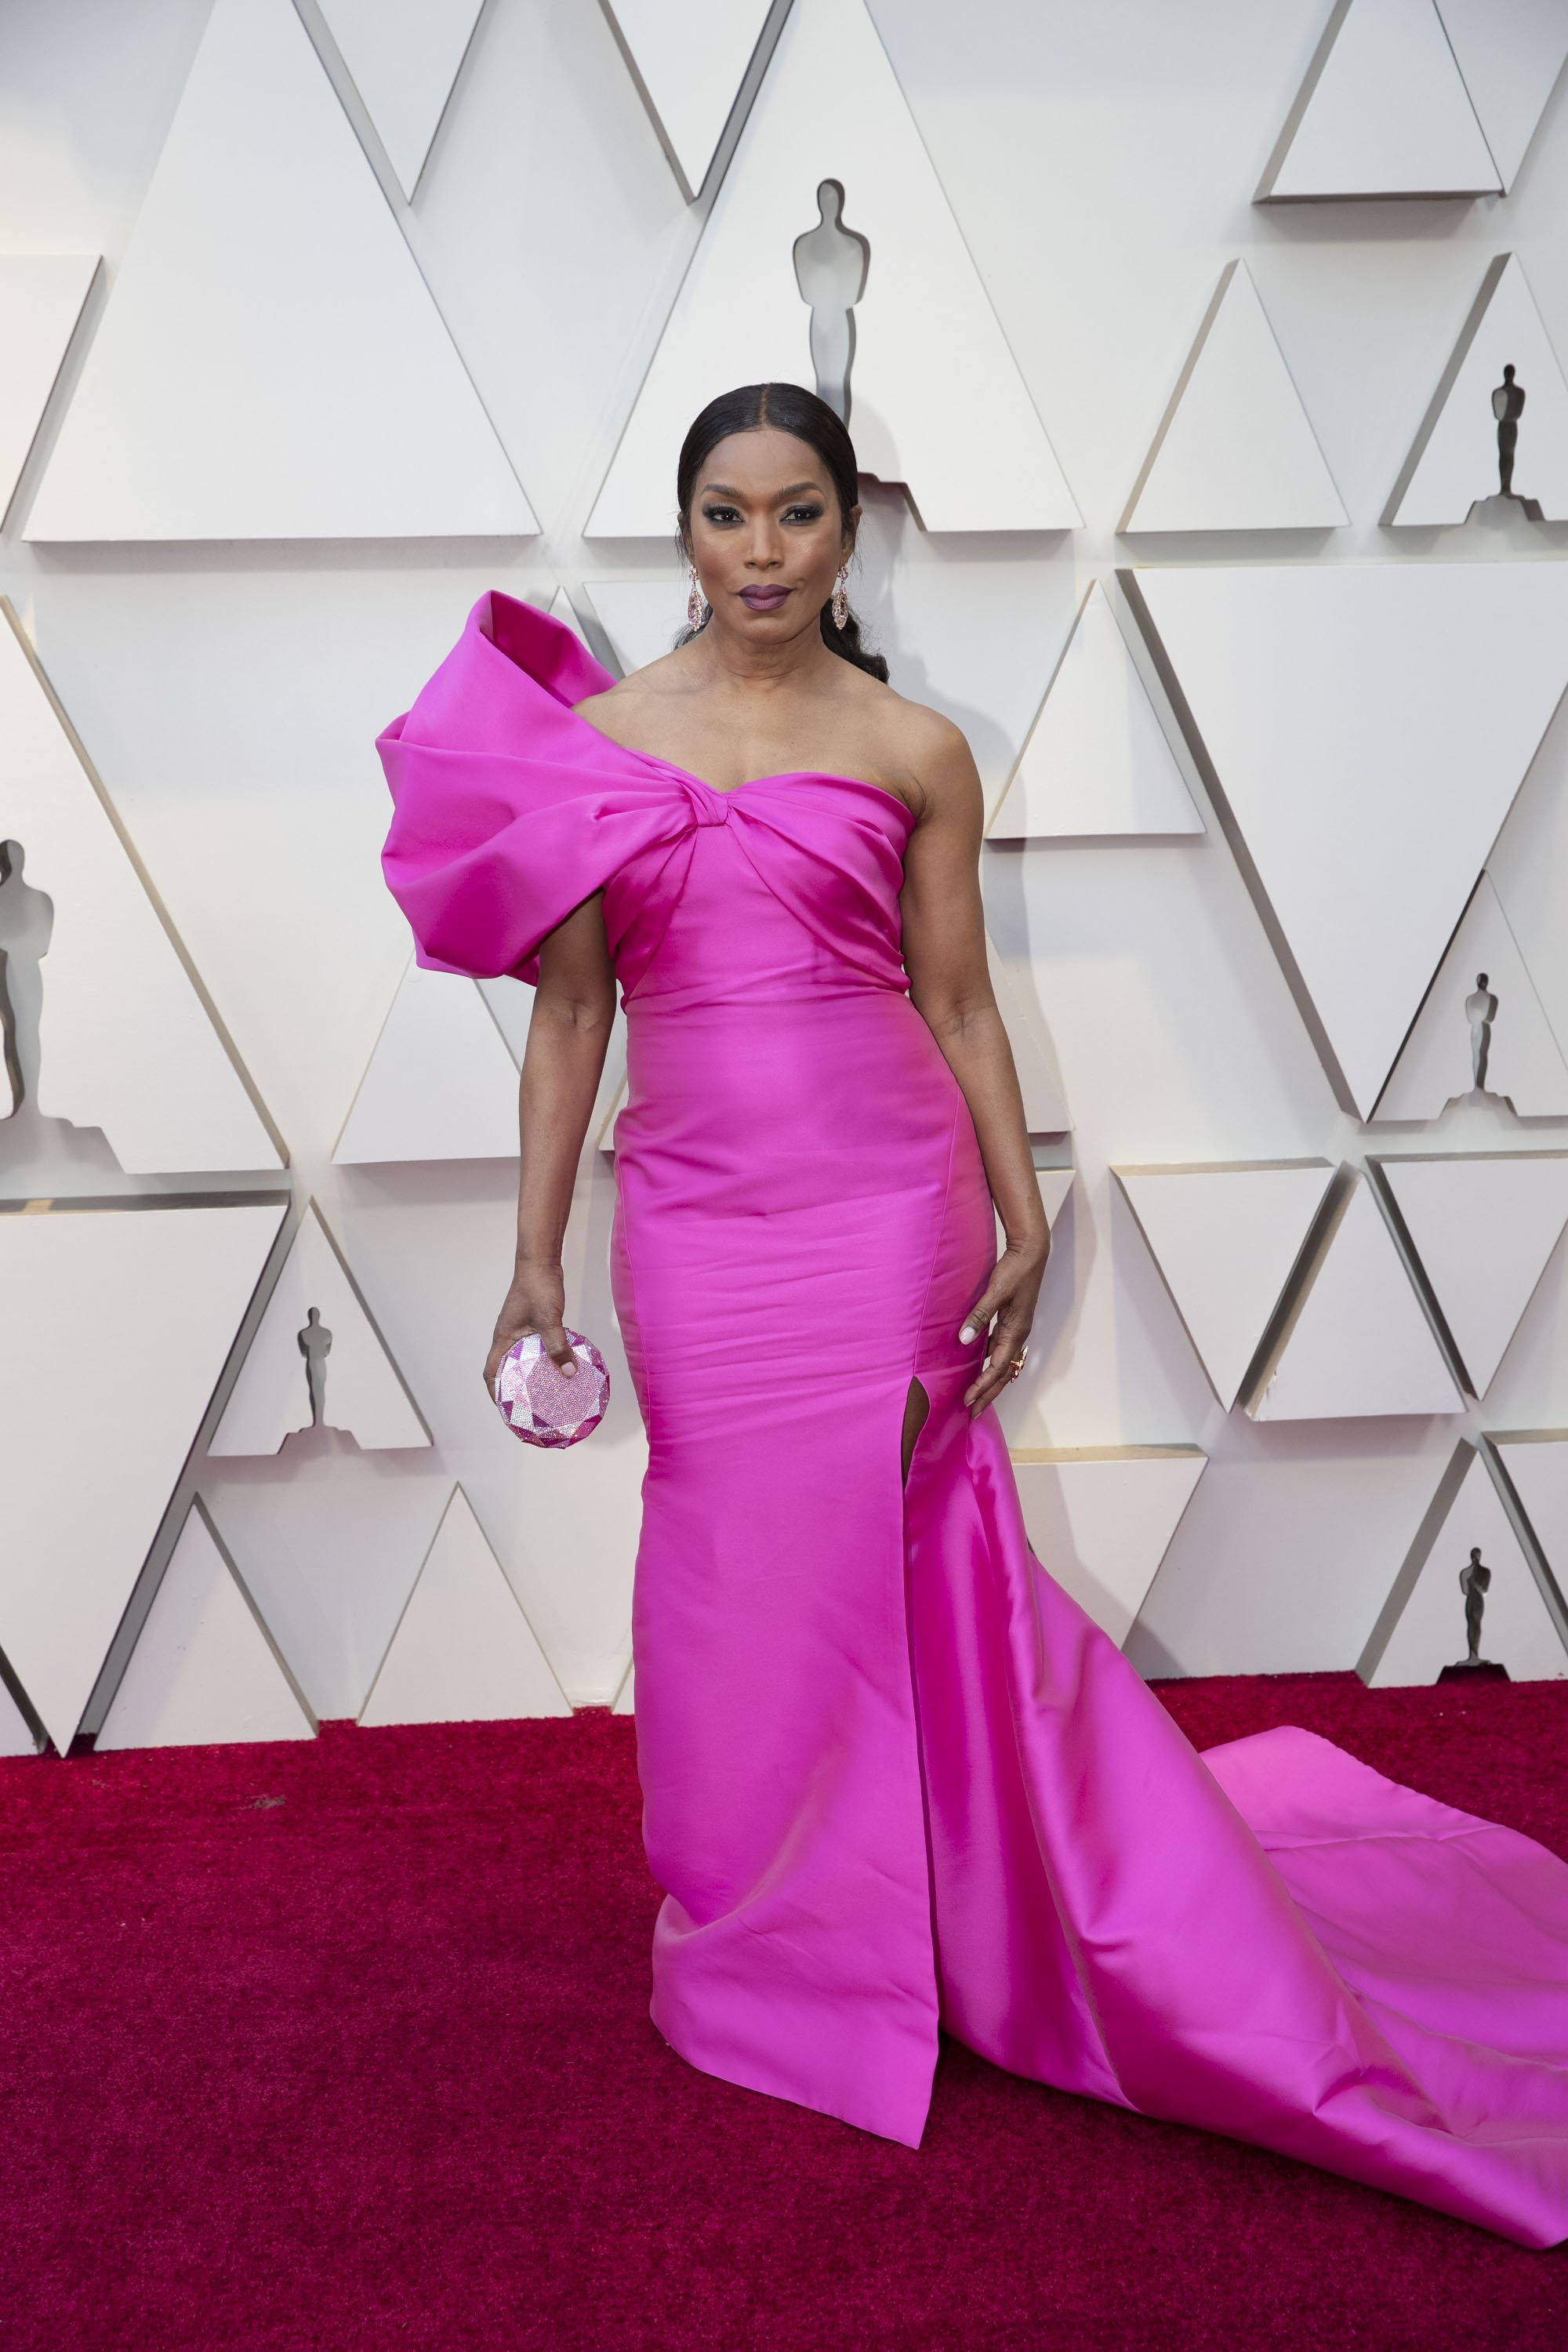 Angela Bassett: Red Carpet from the The 91st Oscar broadcast on Sunday, Feb. 24, 2019, at the Dolby Theatre.